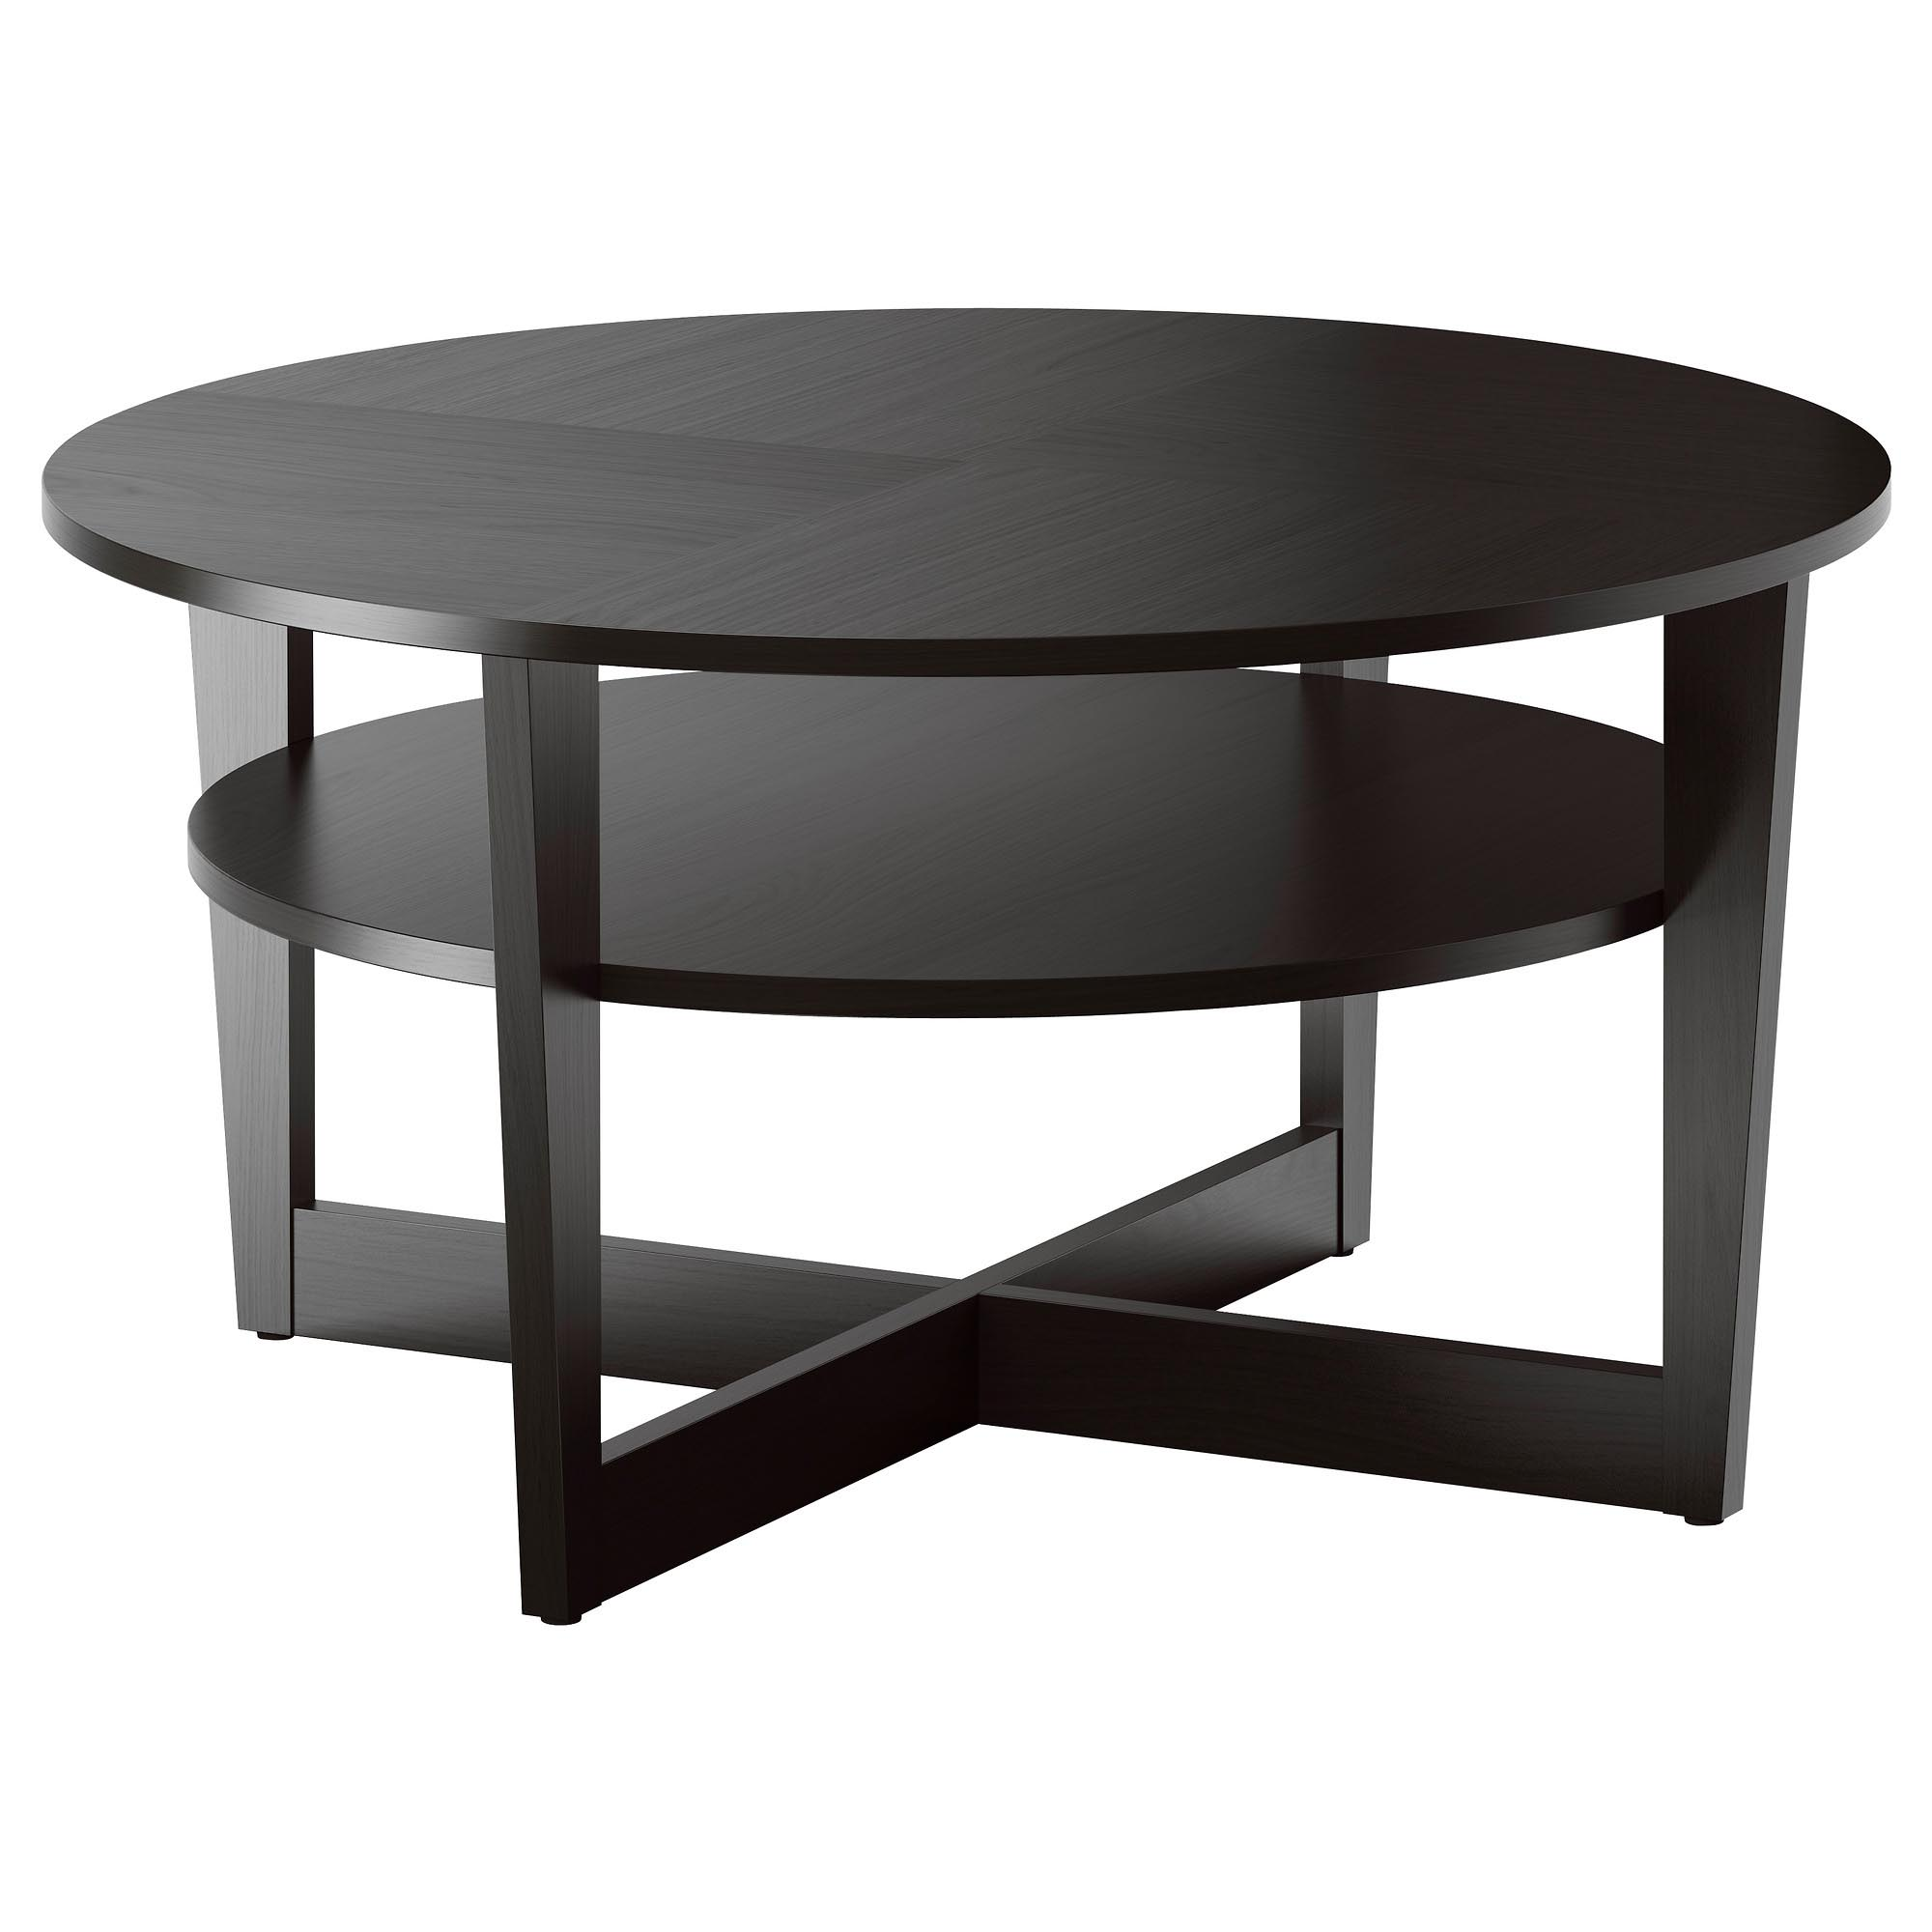 Round Coffee Table Ikea Coffee Table Design Ideas